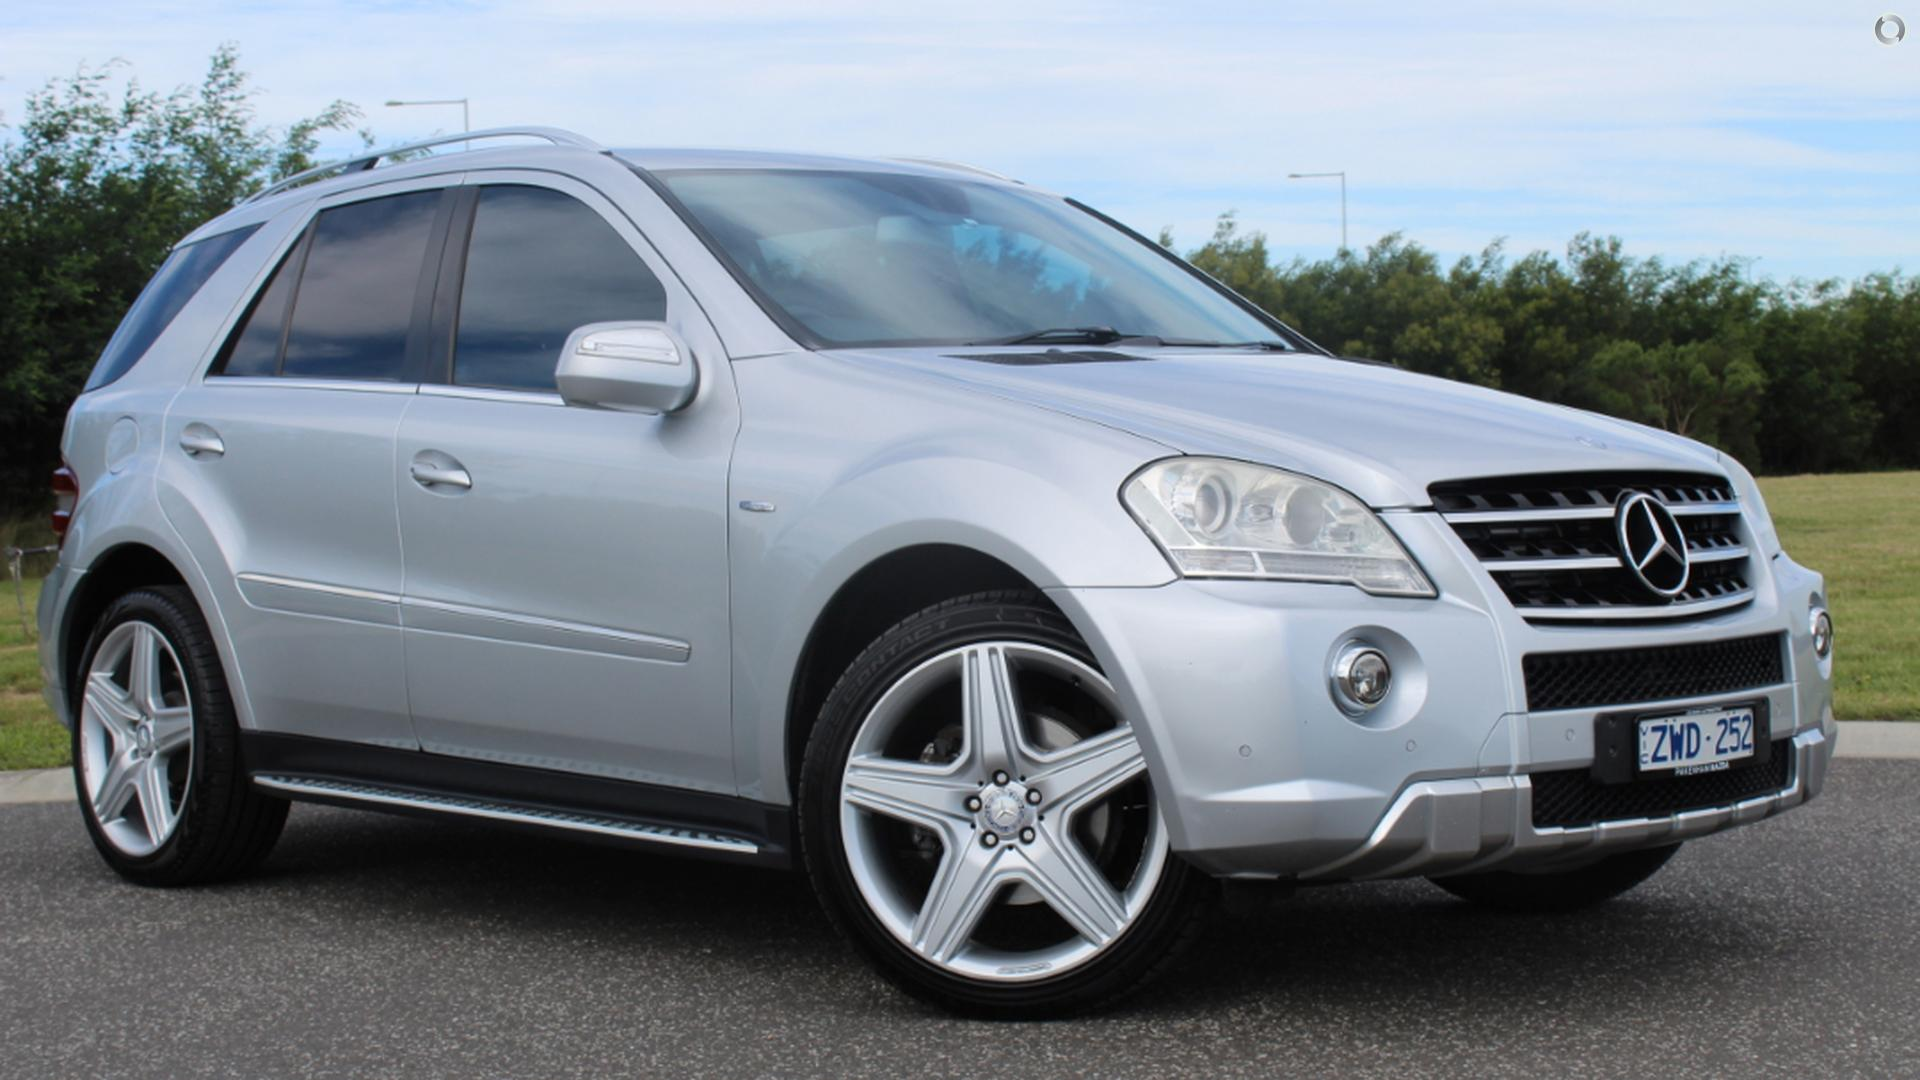 2010 Mercedes-Benz ML300 CDI BlueEFFICIENCY AMG Sports W164